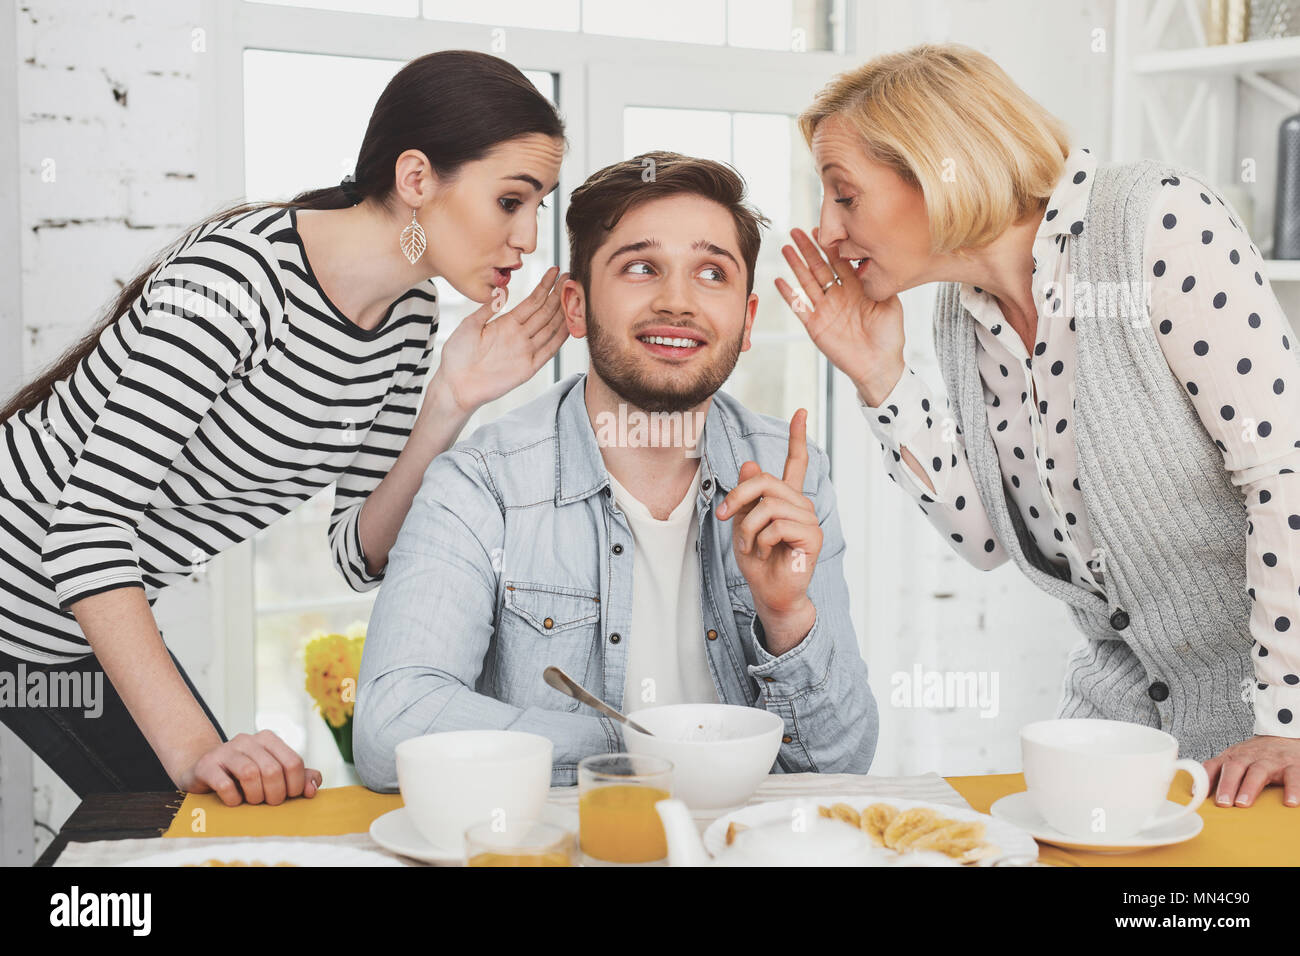 Joyful nice man being in between his wife and mother - Stock Image